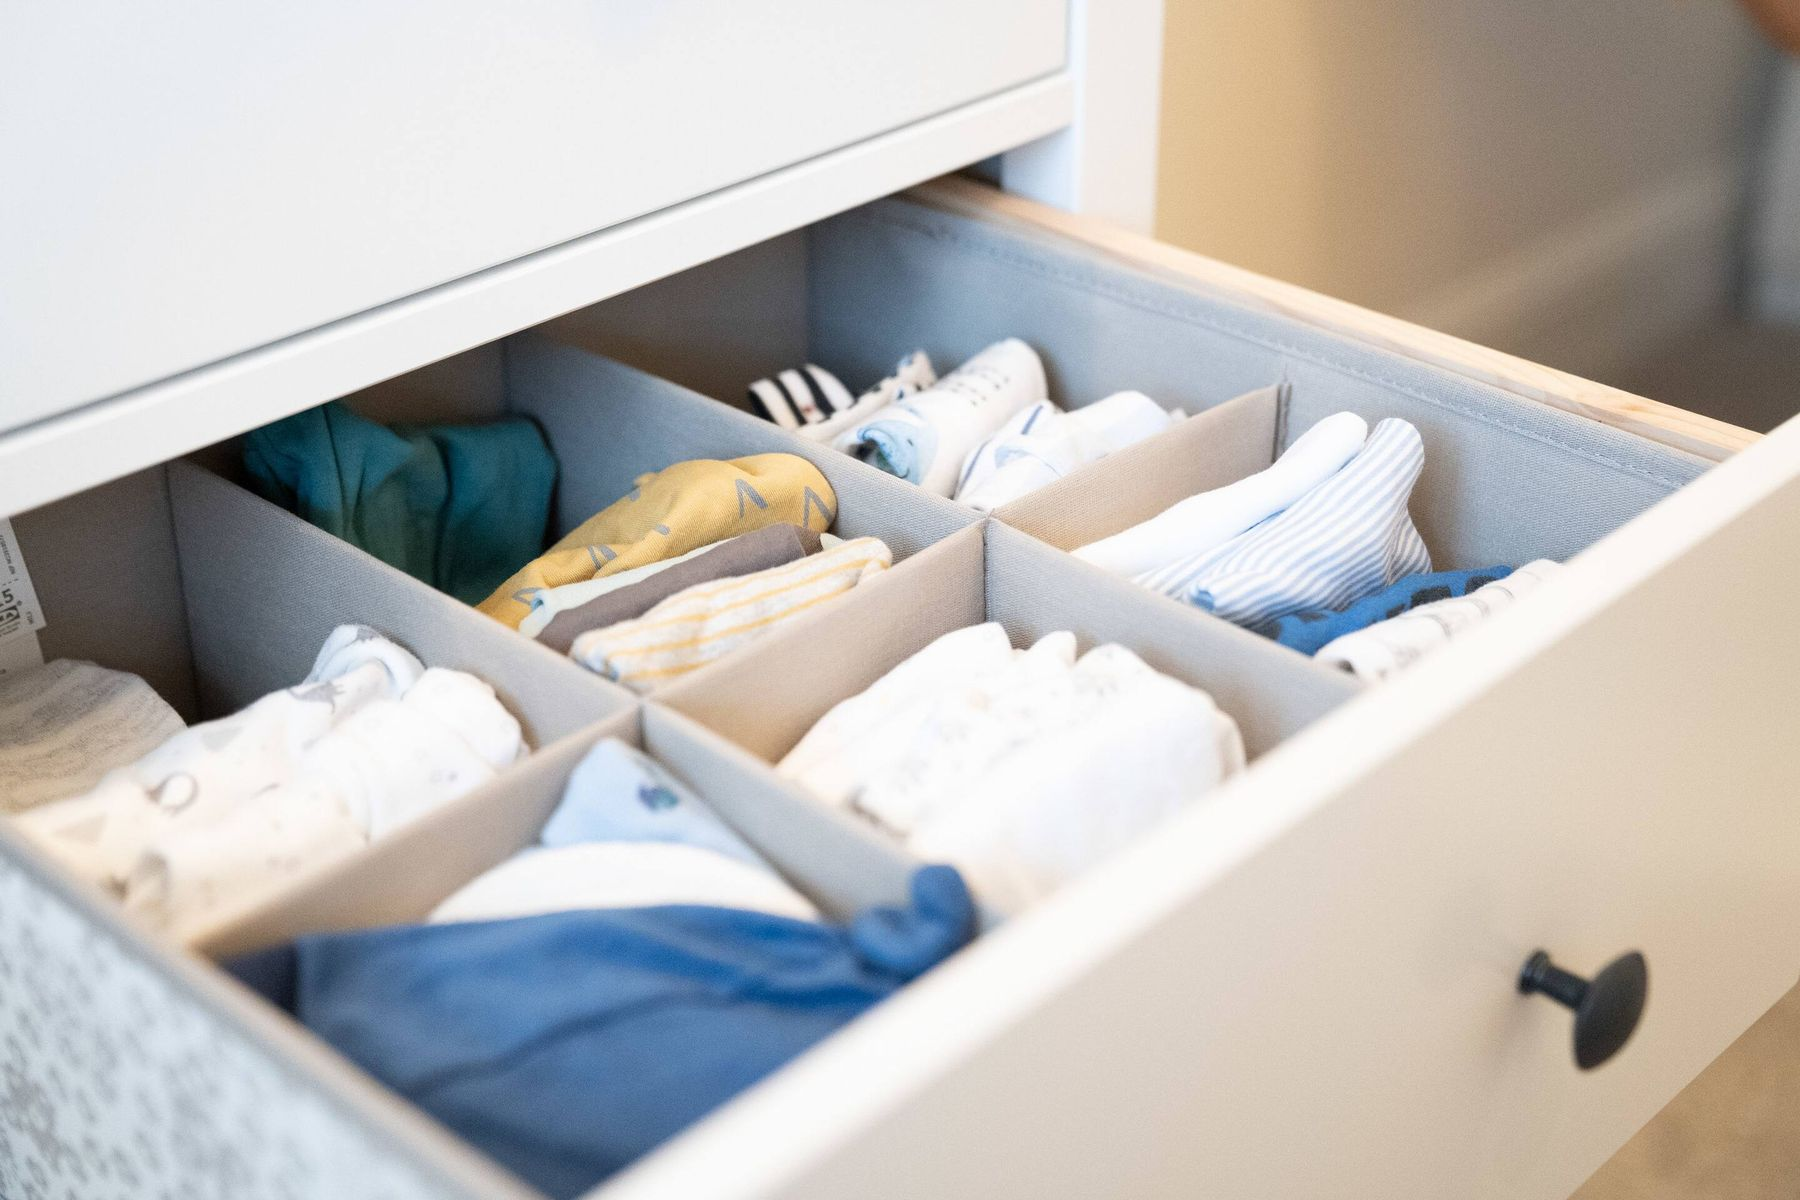 Baby clothes folded and organized in drawer